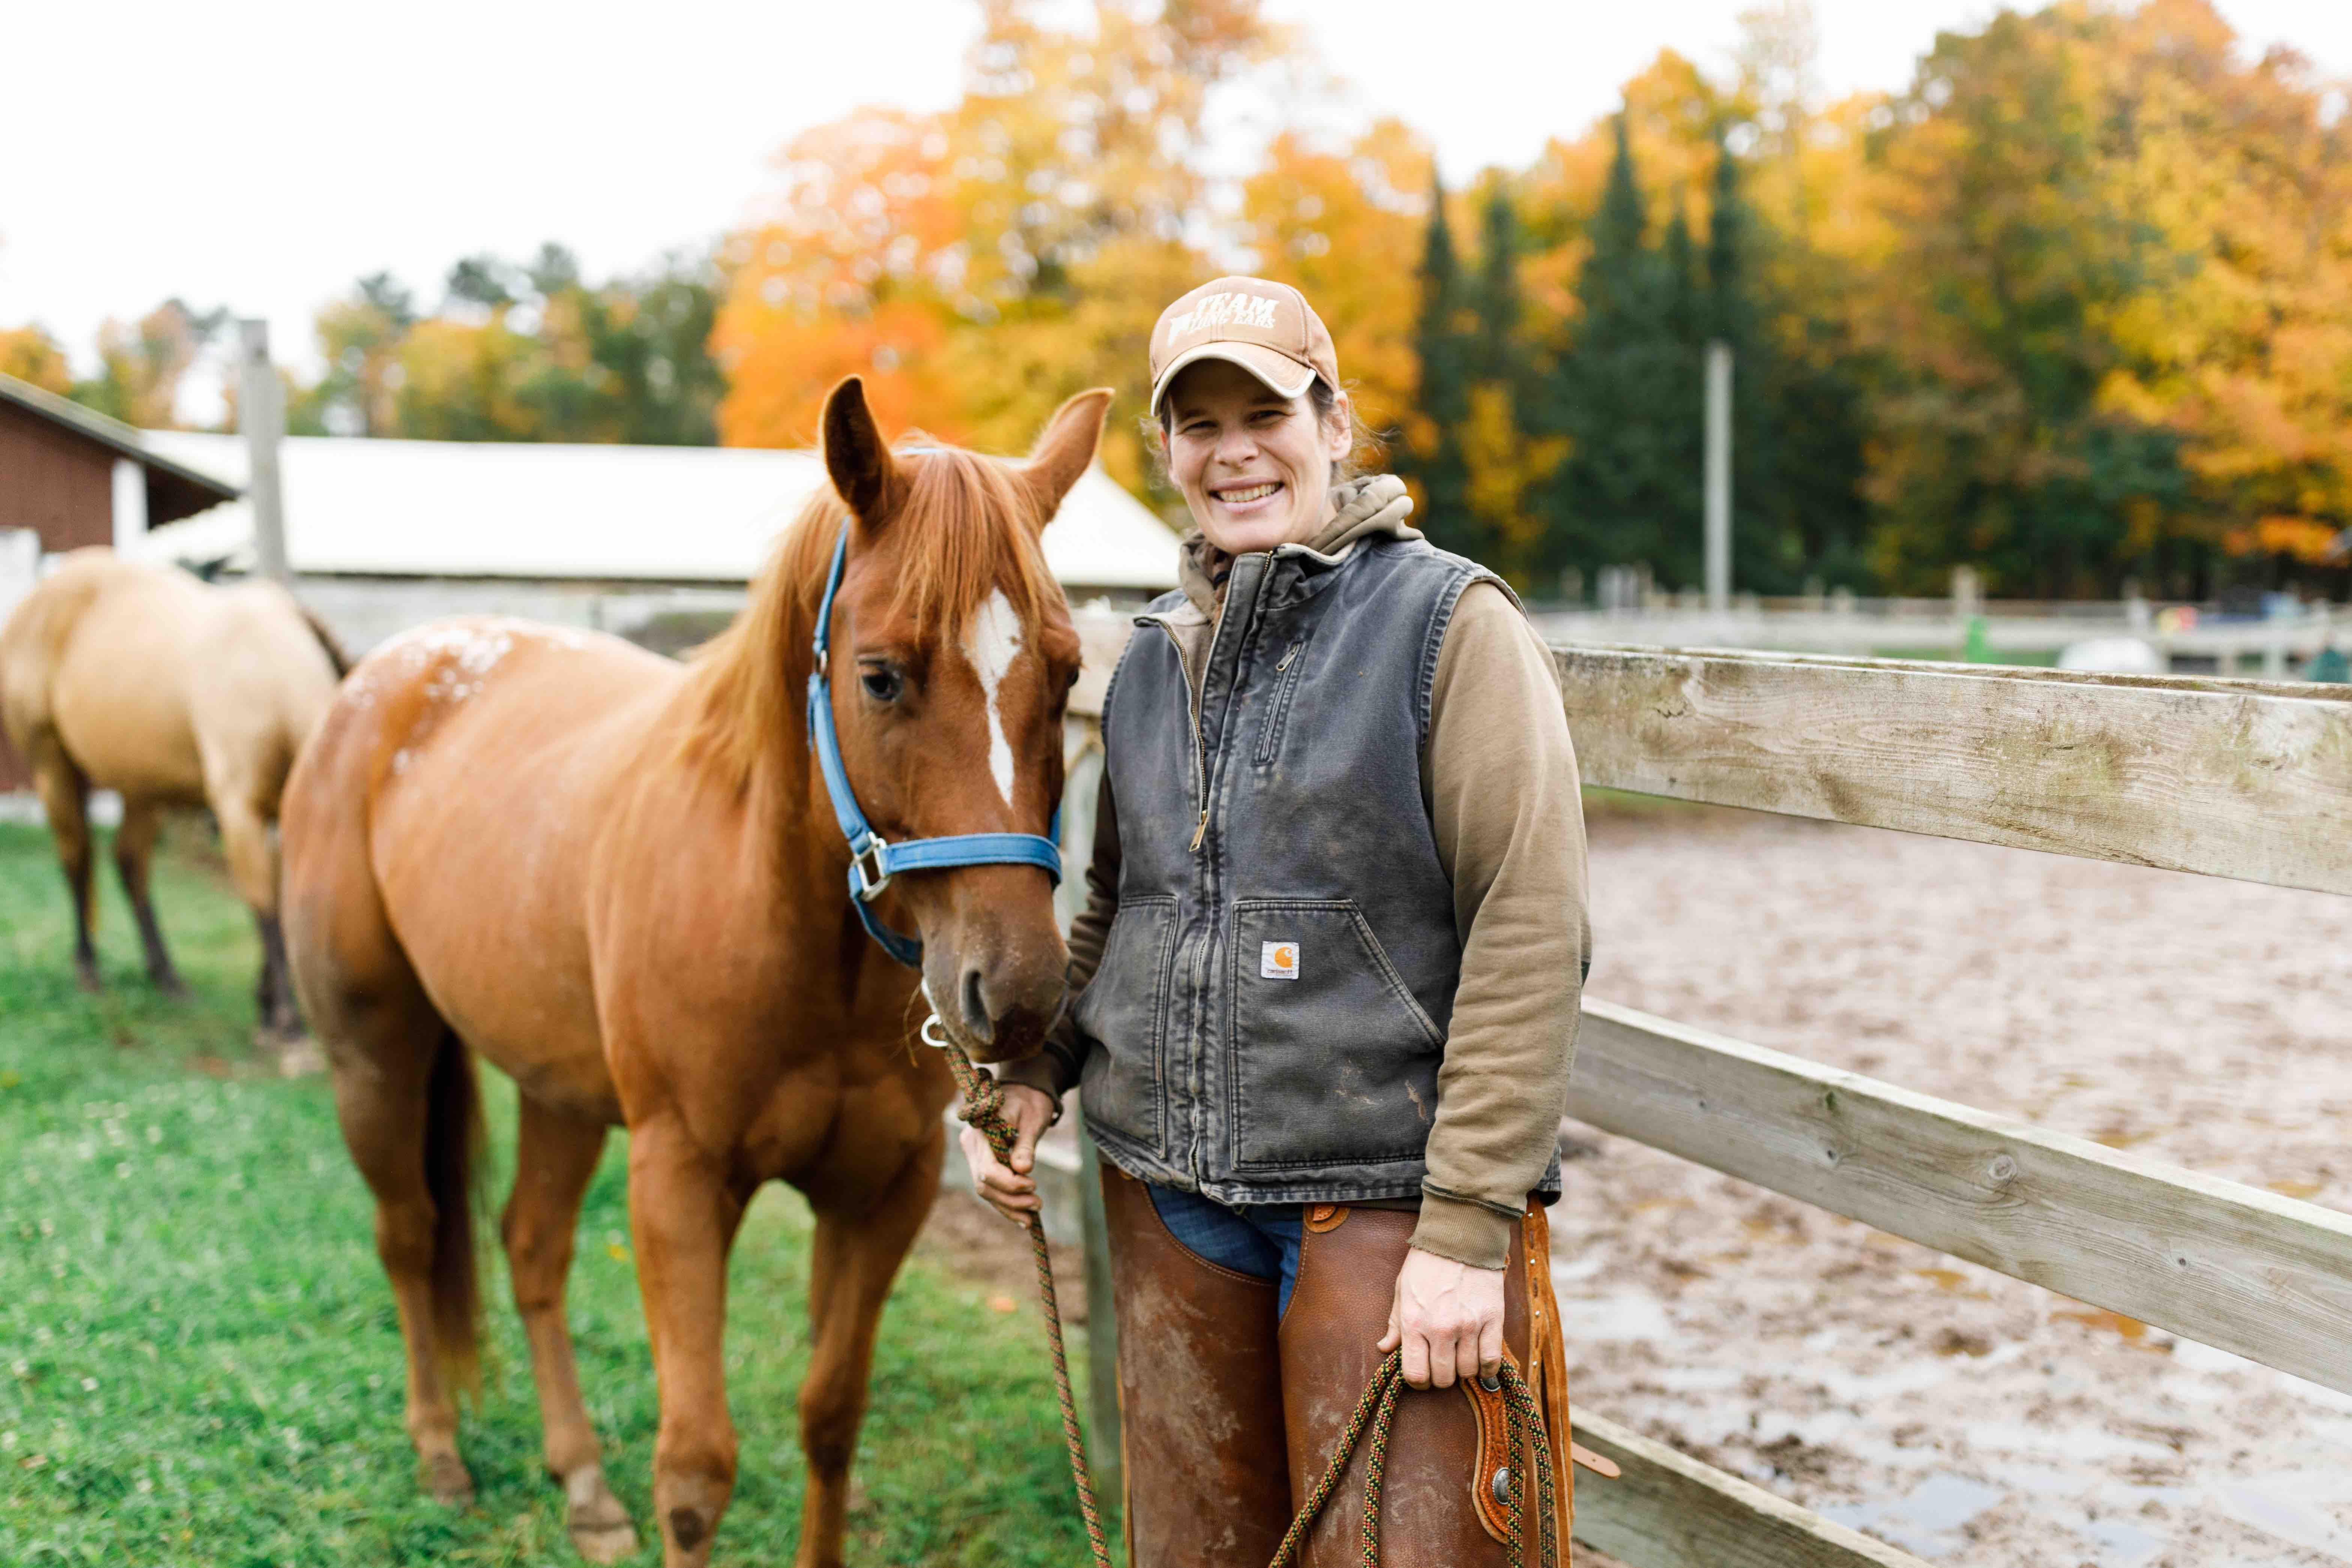 Erin Sharp directs all of our horsemanship experiences from summer camp to graduate student training.